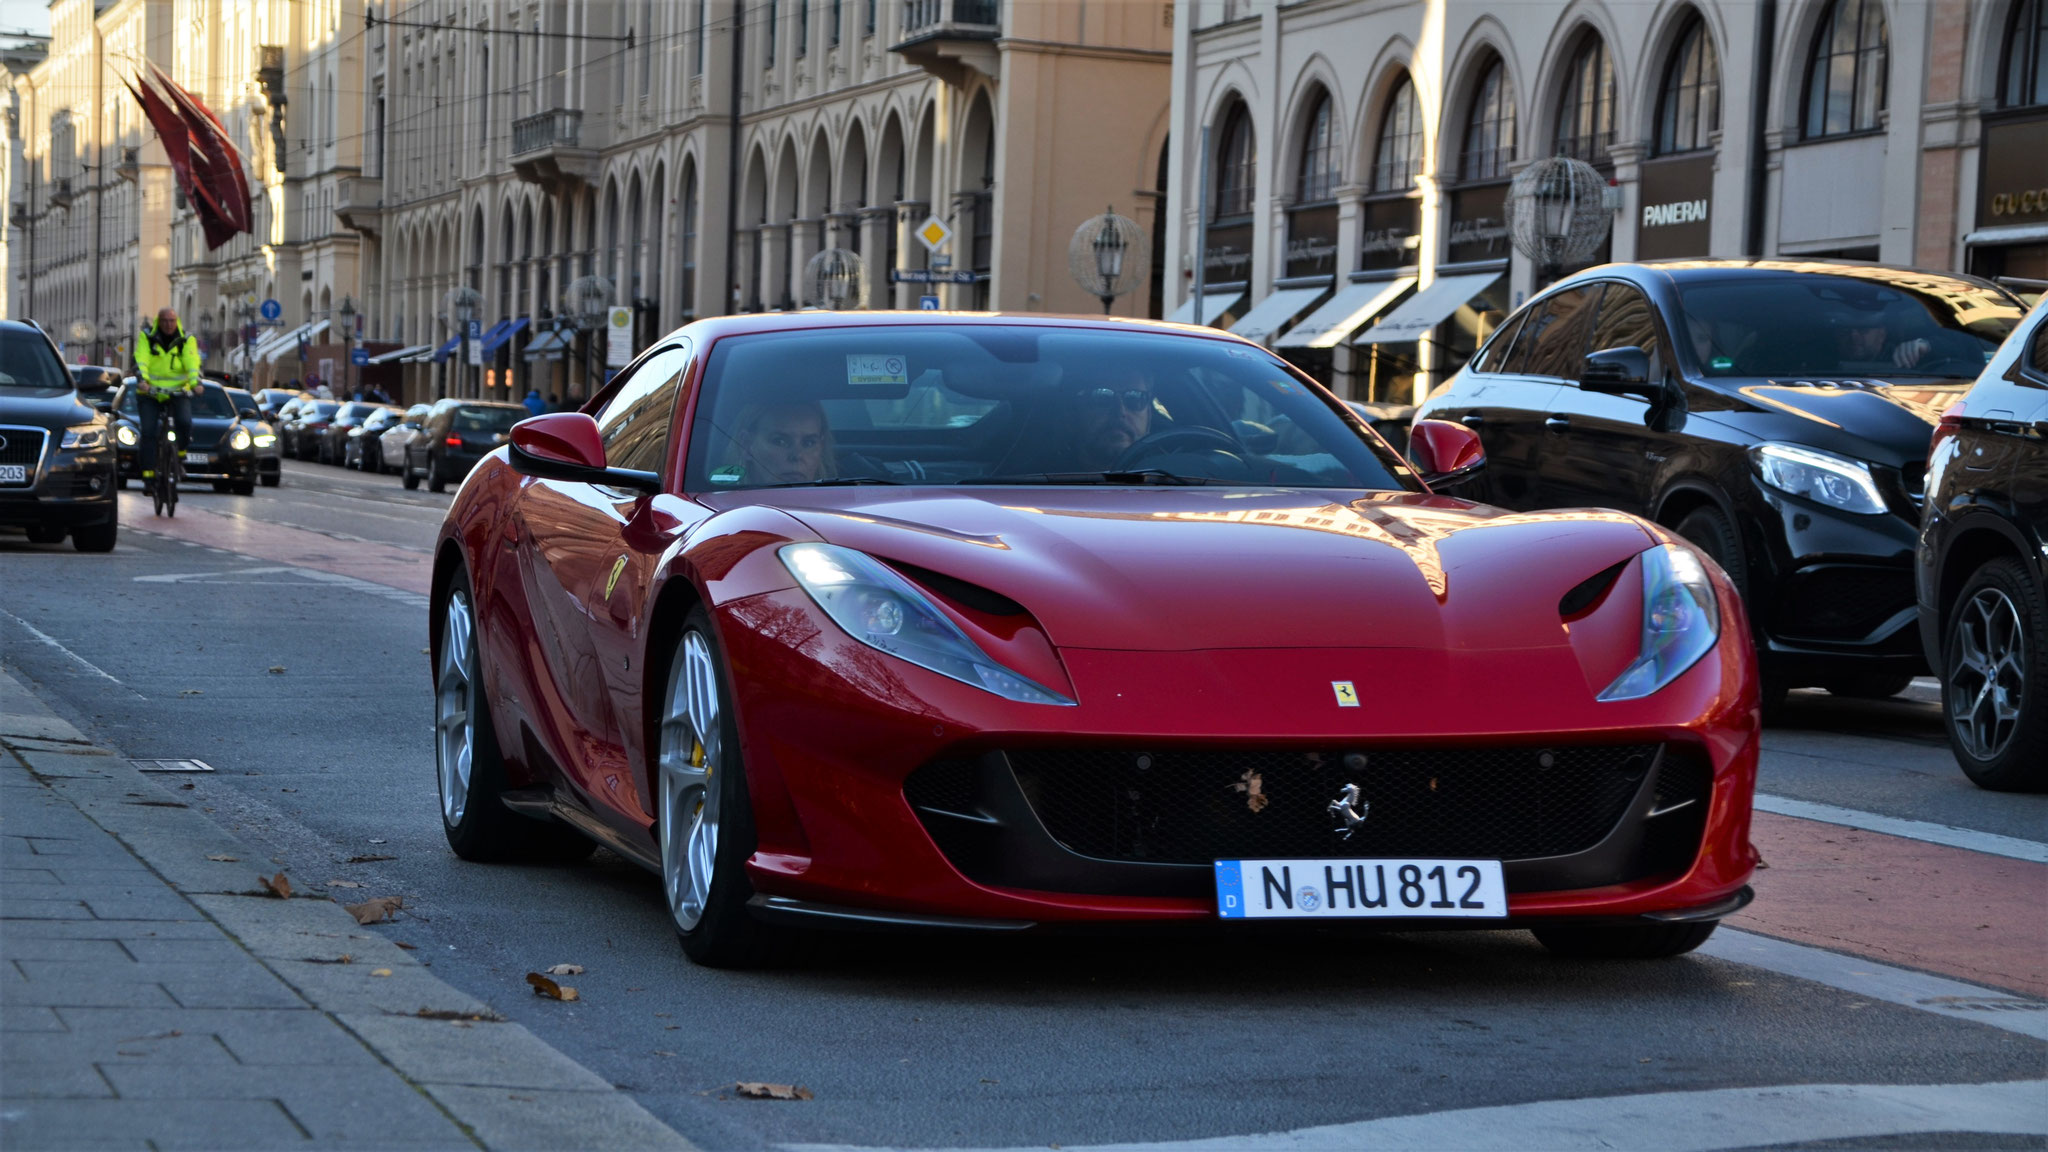 Ferrari 812 Superfast - N-HU-812